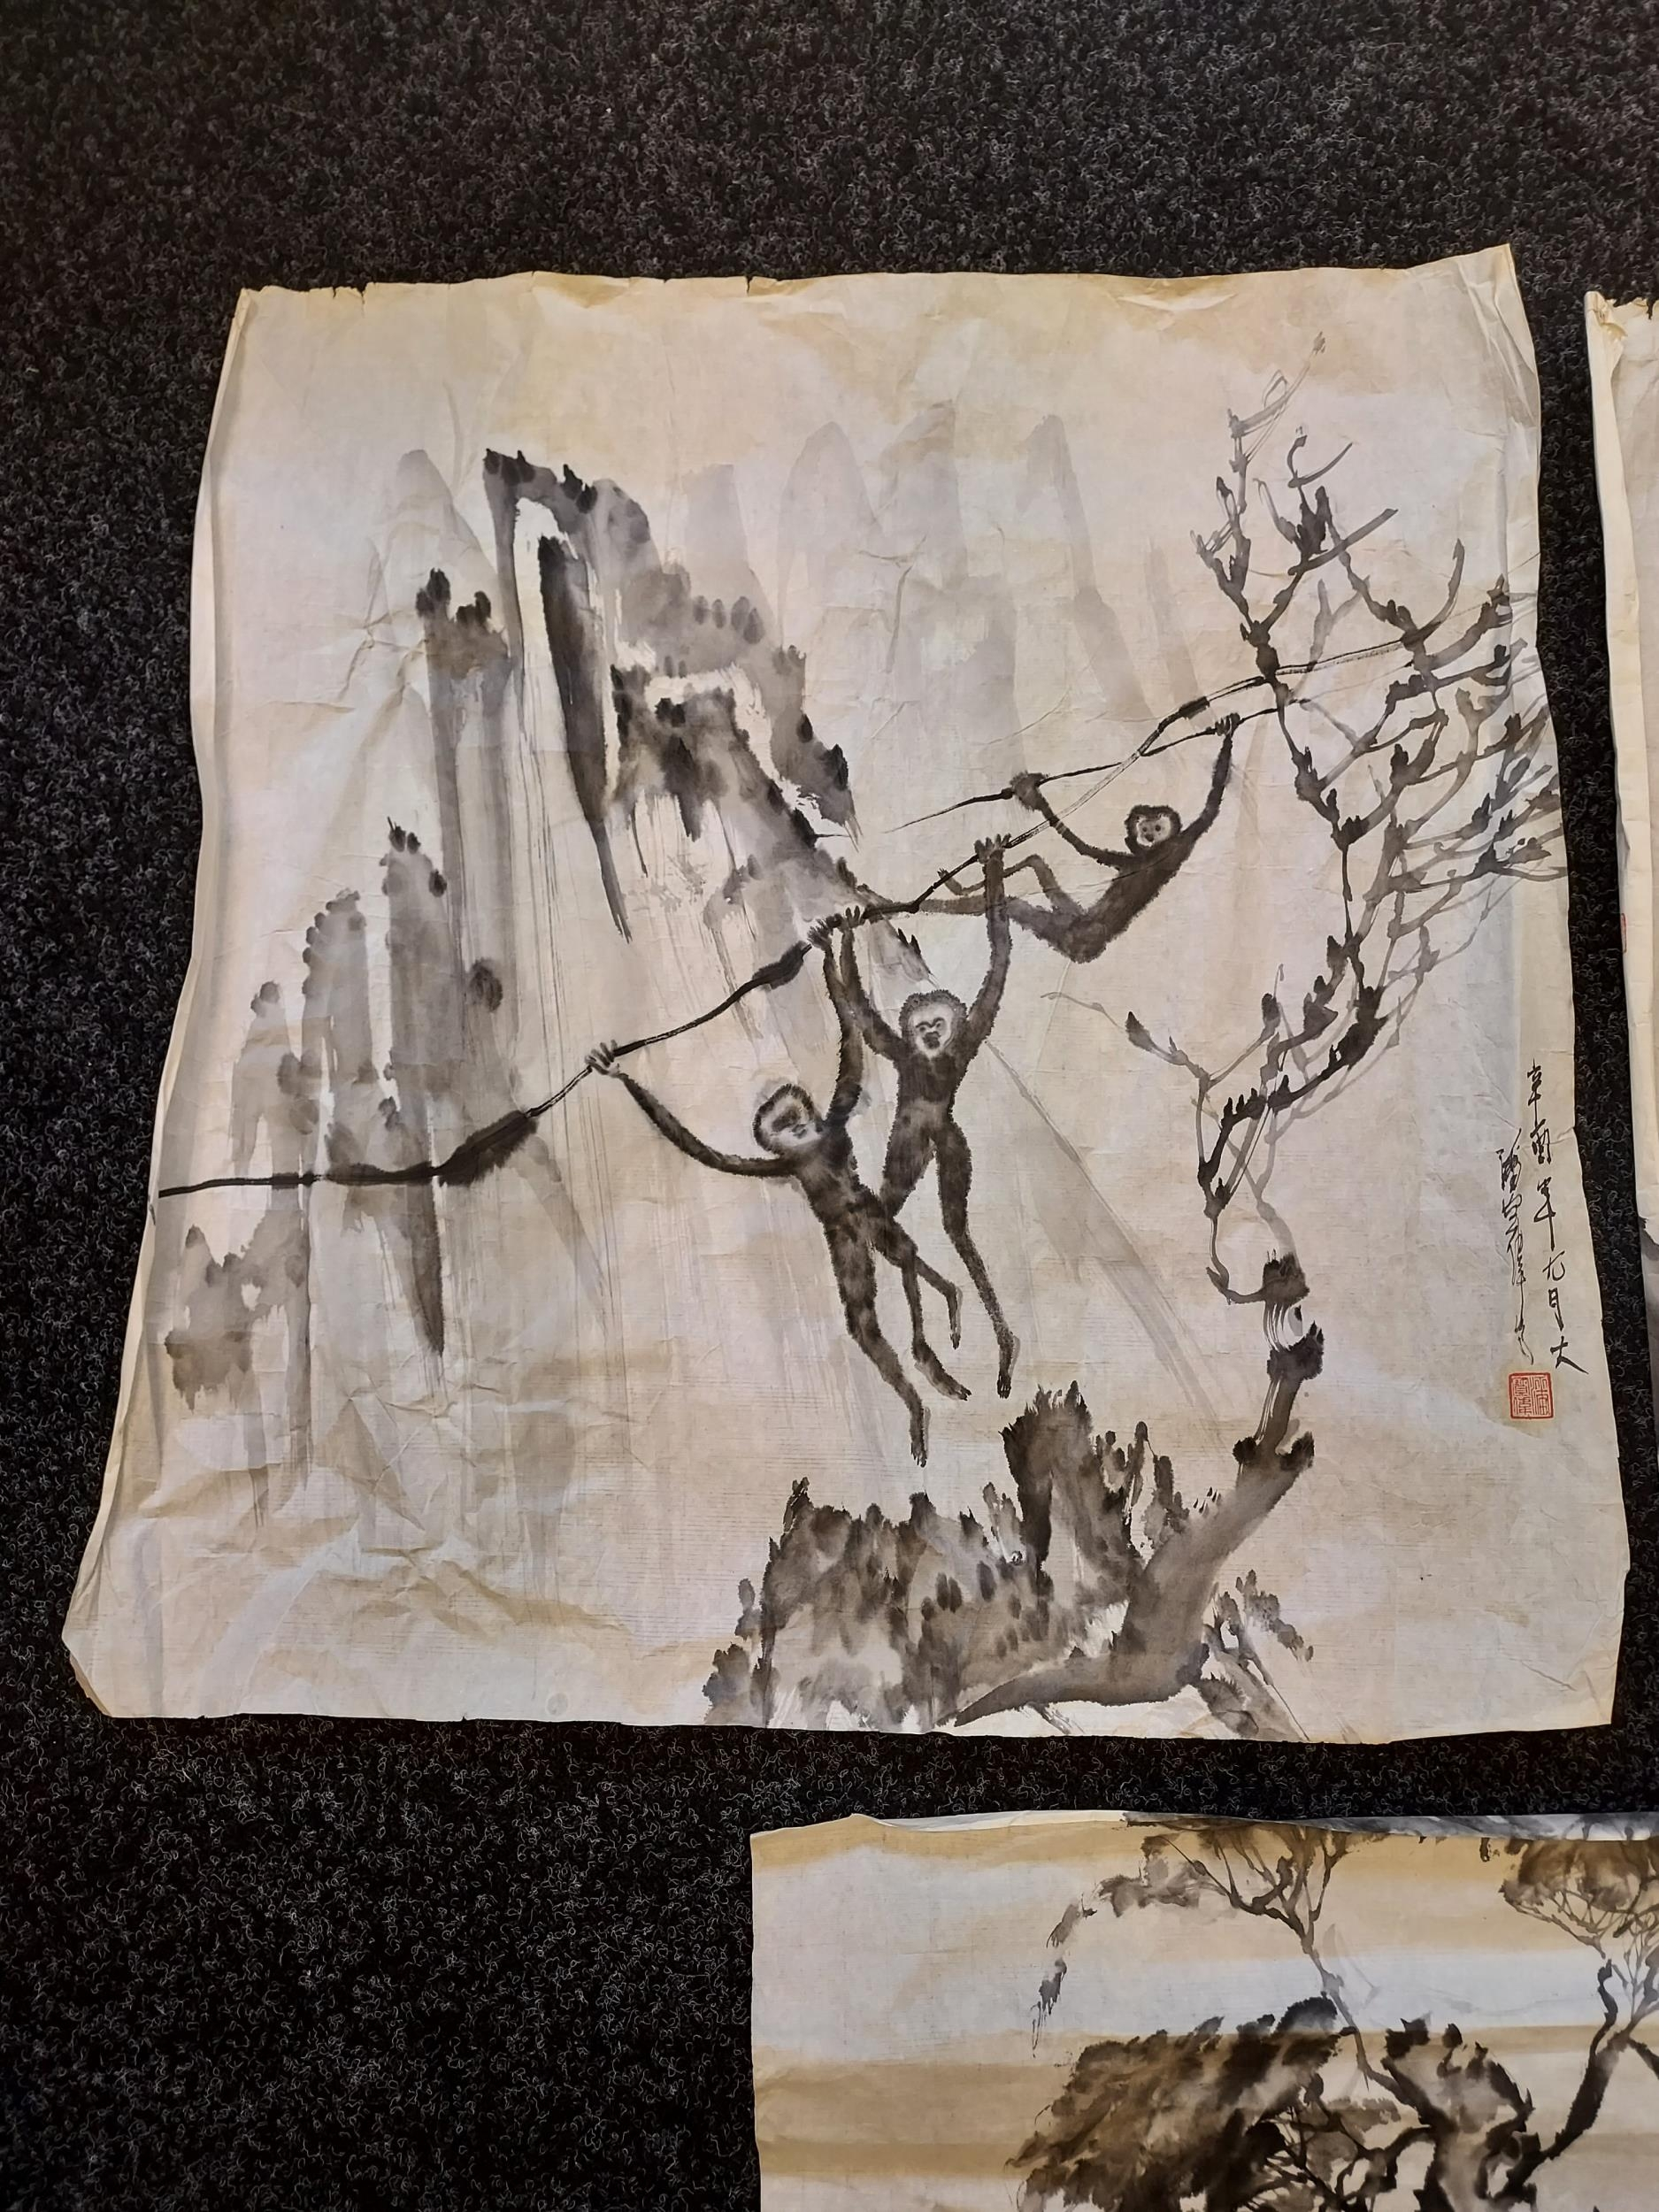 A selection of Japanese ink wash paintings depicting various monkey figures [signed by artist] - Image 4 of 4